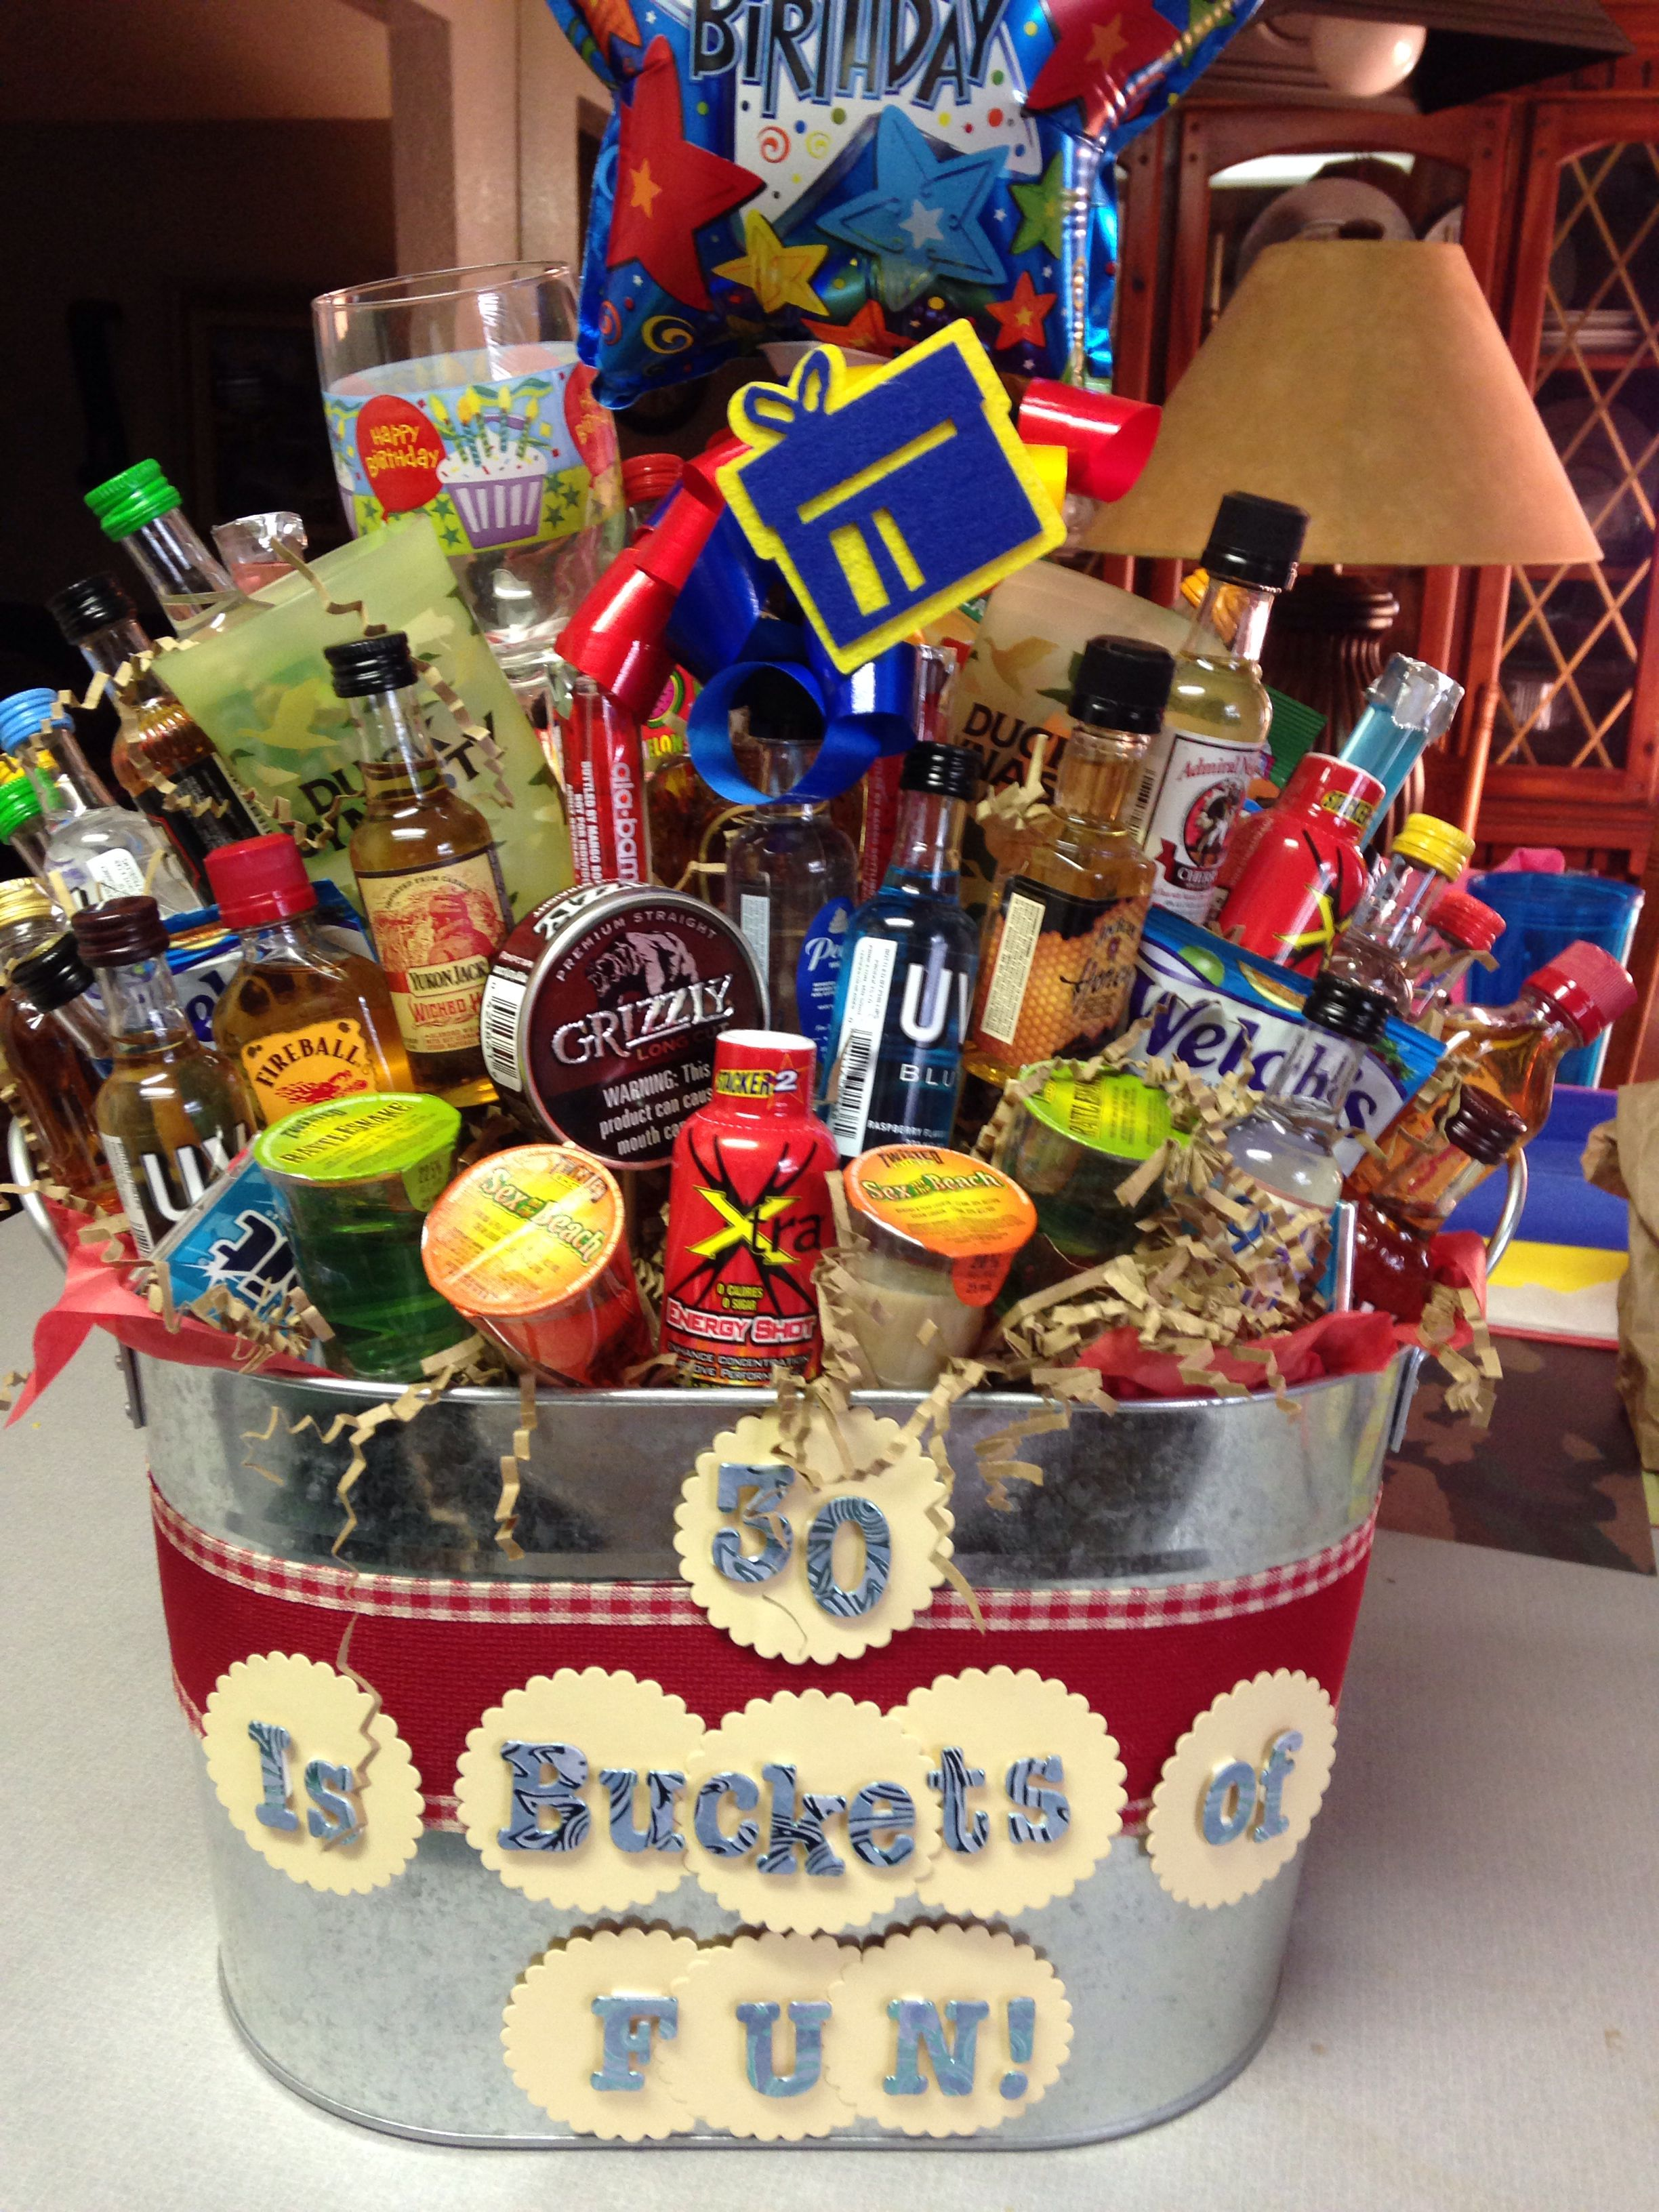 Pin By Stacy Reagan On 50th In 2020 50th Birthday Gag Gifts 50th Birthday Party Ideas For Men Birthday Gag Gifts